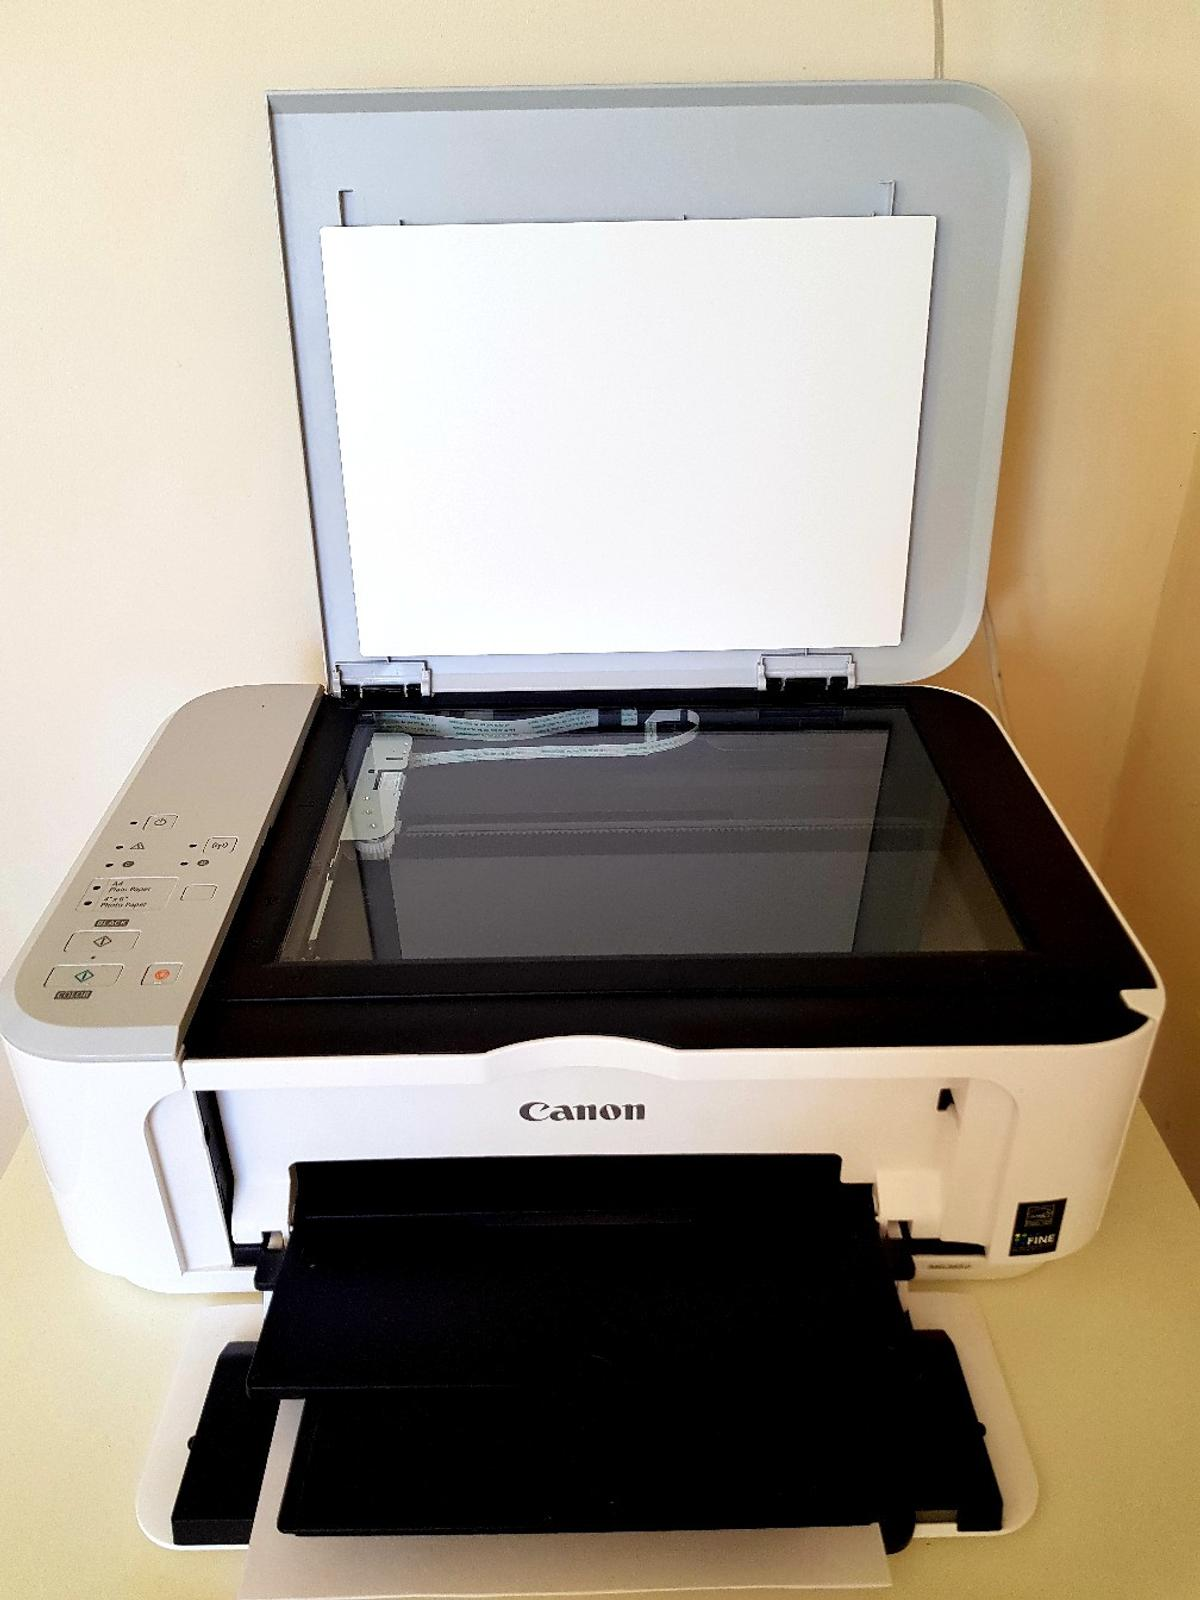 CANON PIXMA MG3650 All-in-One Wireless Inkjet